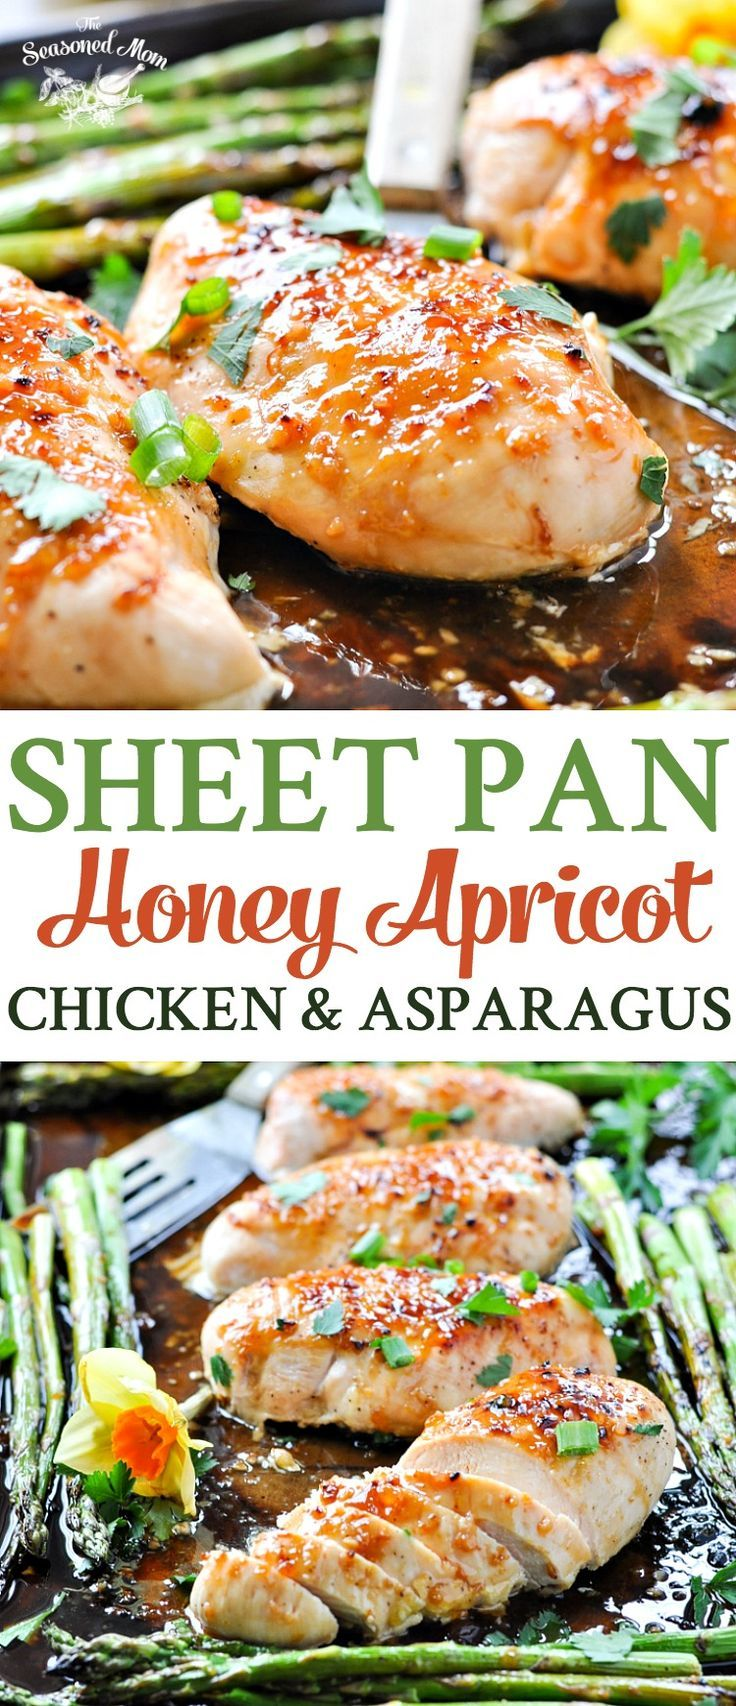 Sheet Pan Honey Apricot Chicken and Asparagus   Easy Dinner Recipes   Chicken Recipes   Chicken Breast Recipes   Sheet Pan Meals   One Tray Oven Dinners   Asparagus Recipes Healthy   Healthy Dinner Ideas